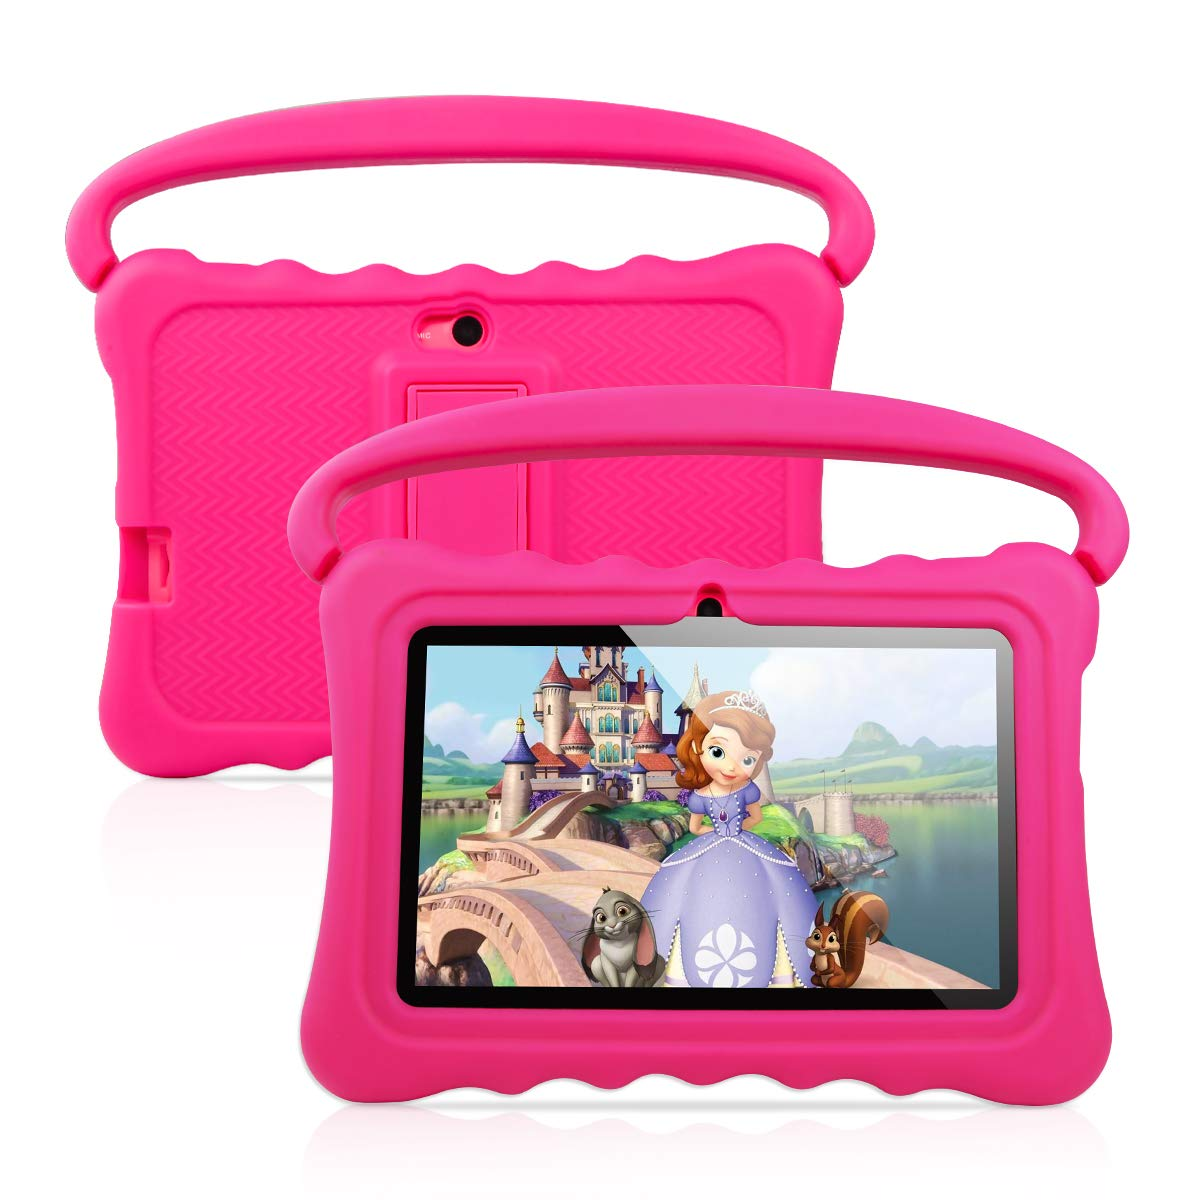 Android Learning Entertaining Quad Core Kid Proof